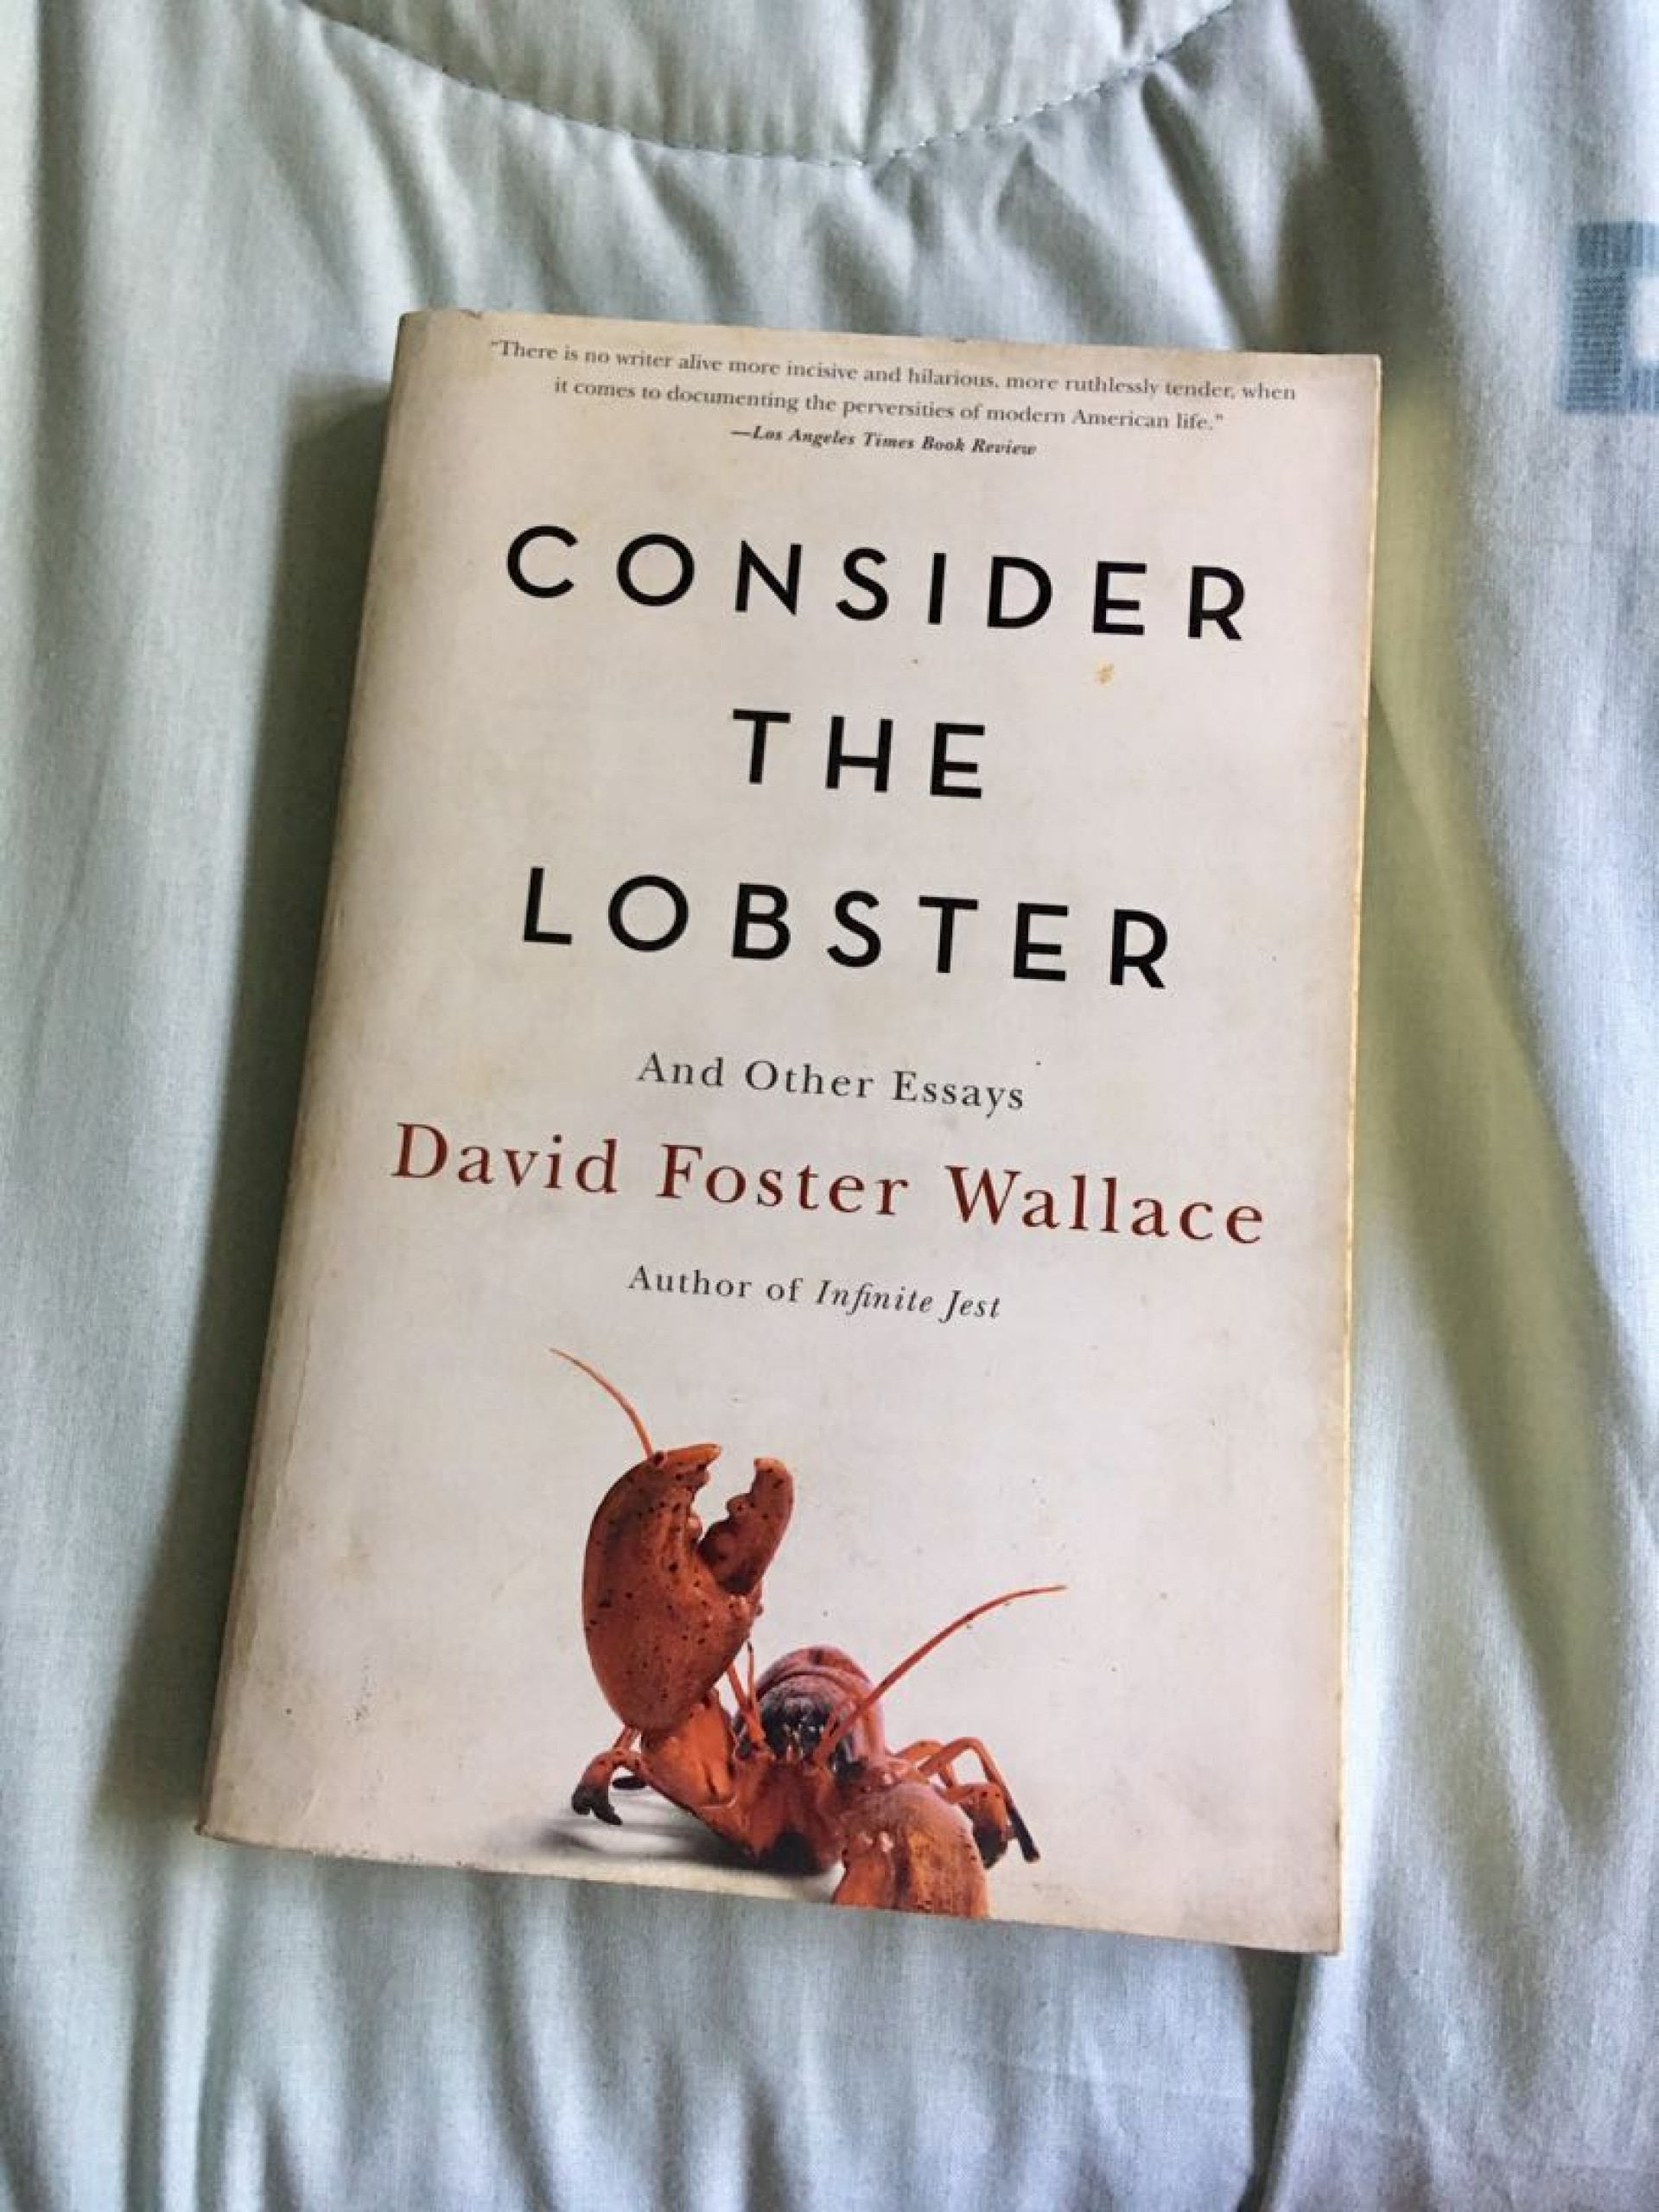 019 Consider The Lobster Essay Example By David Foster Wallace 1522206669 D4e499d5 Exceptional Rhetorical Analysis Review 1920